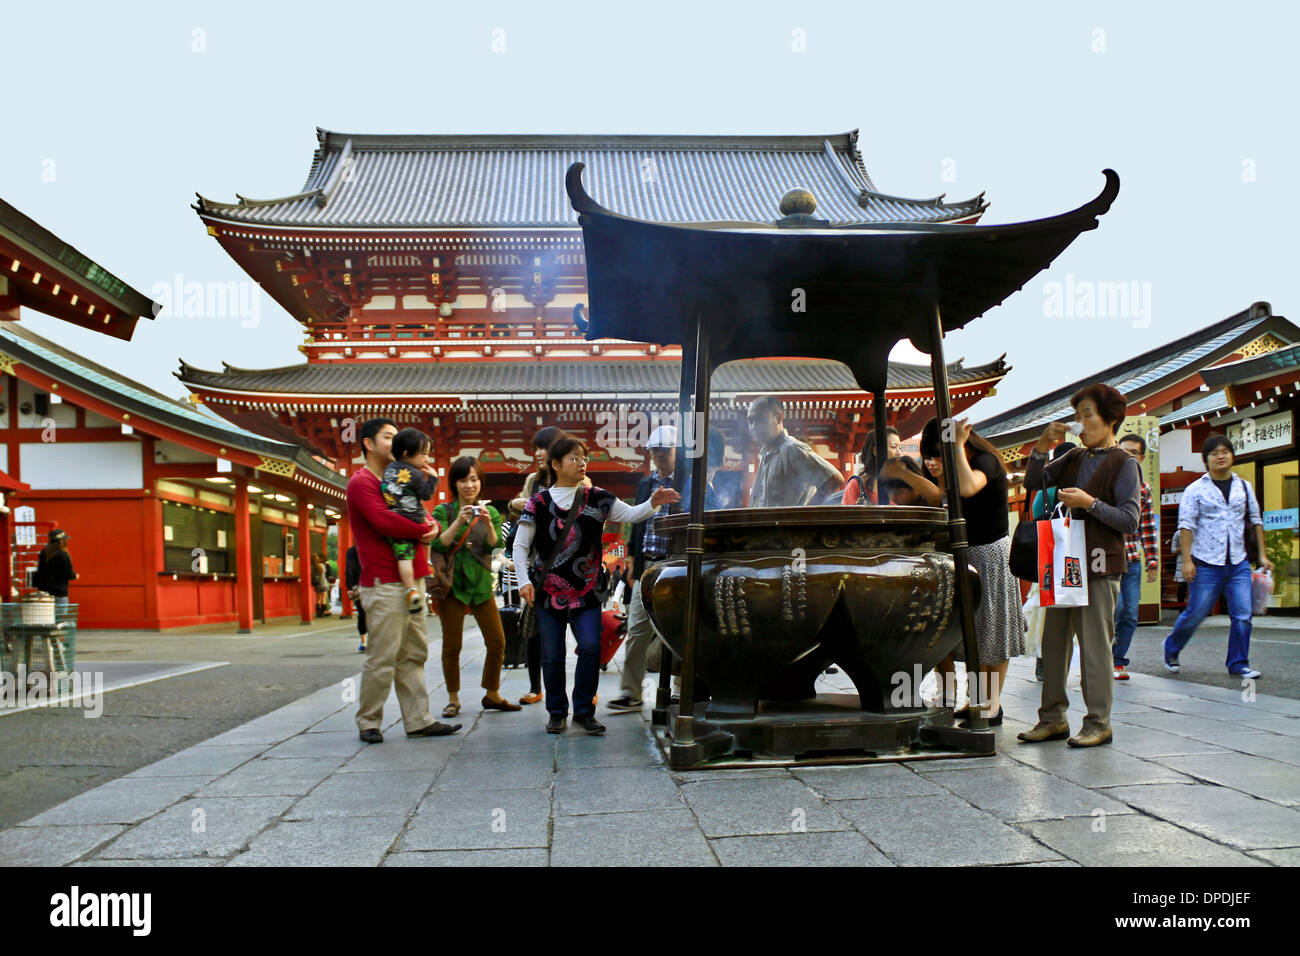 Huge censer surrounded by people, who waft incense fumes to stay healthy, at Senso-ji Temple, Asakusa, Tokyo, Japan. - Stock Image